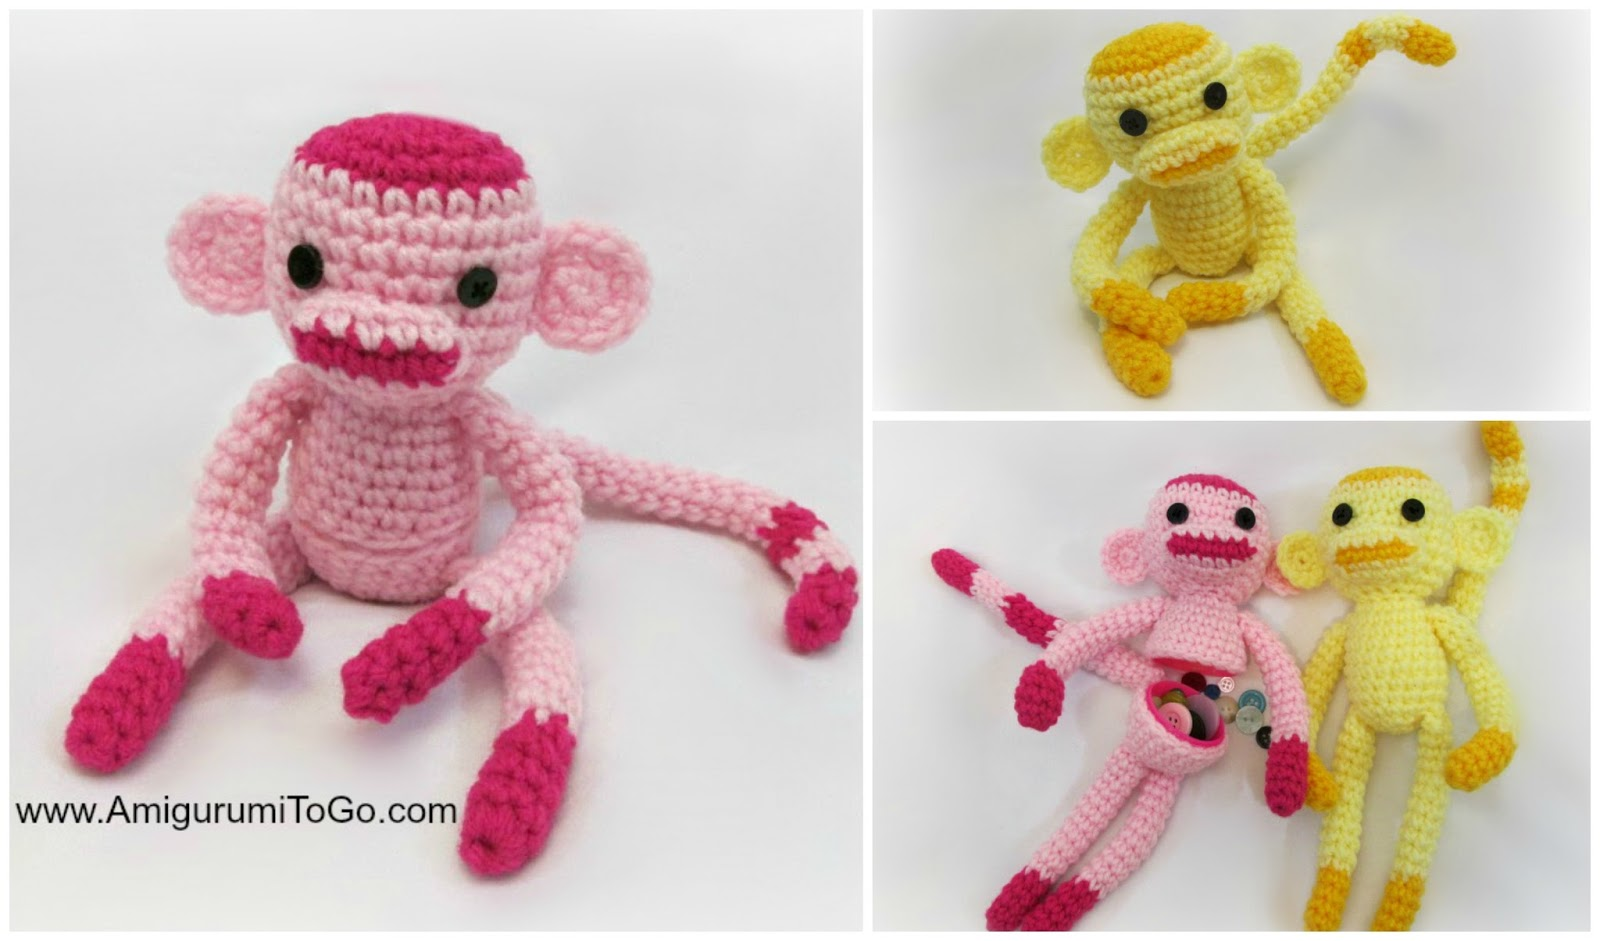 Amigurumi Tutorials : Rosey The Monkey and Friends With Egg and Without ...